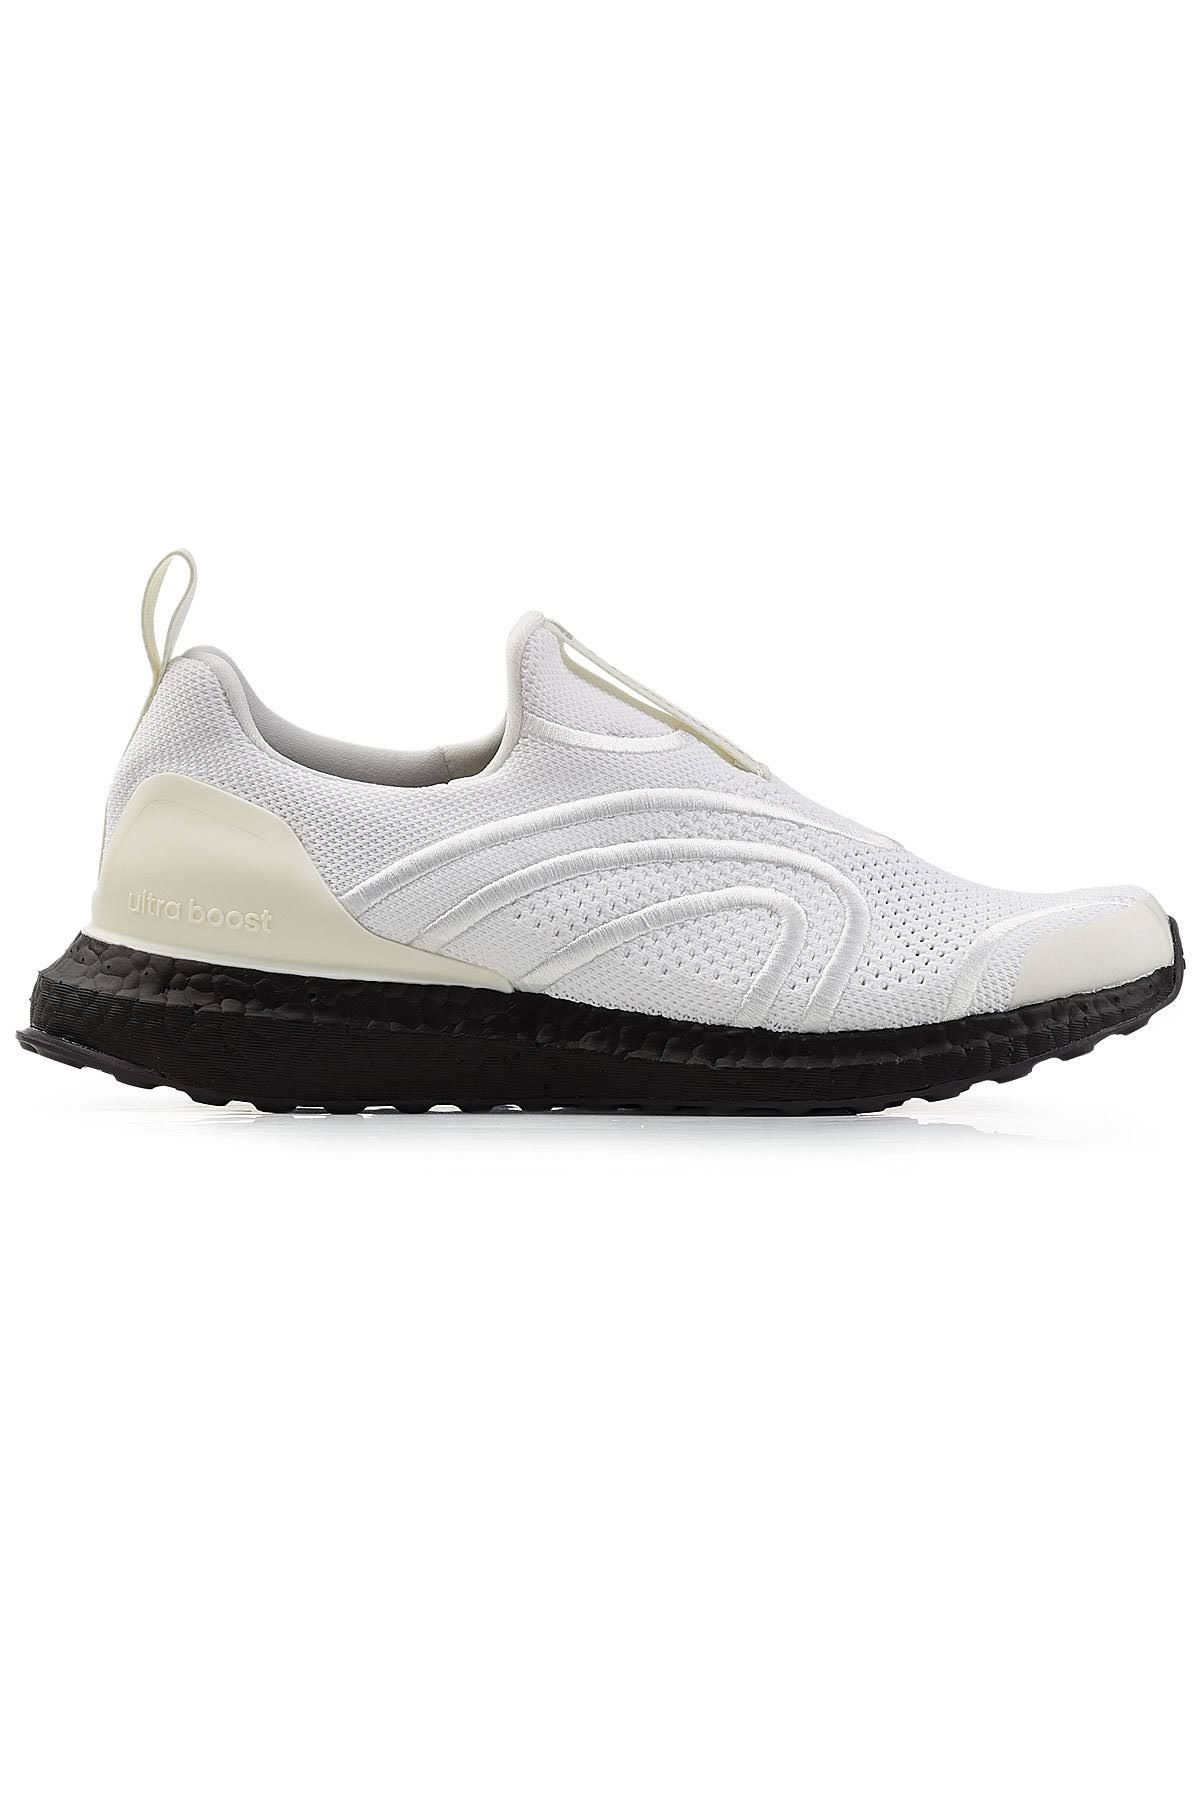 Stella Sneakers 5 Uk 5 Ultraboost White Uncaged Mccartney rOxzwrBqR